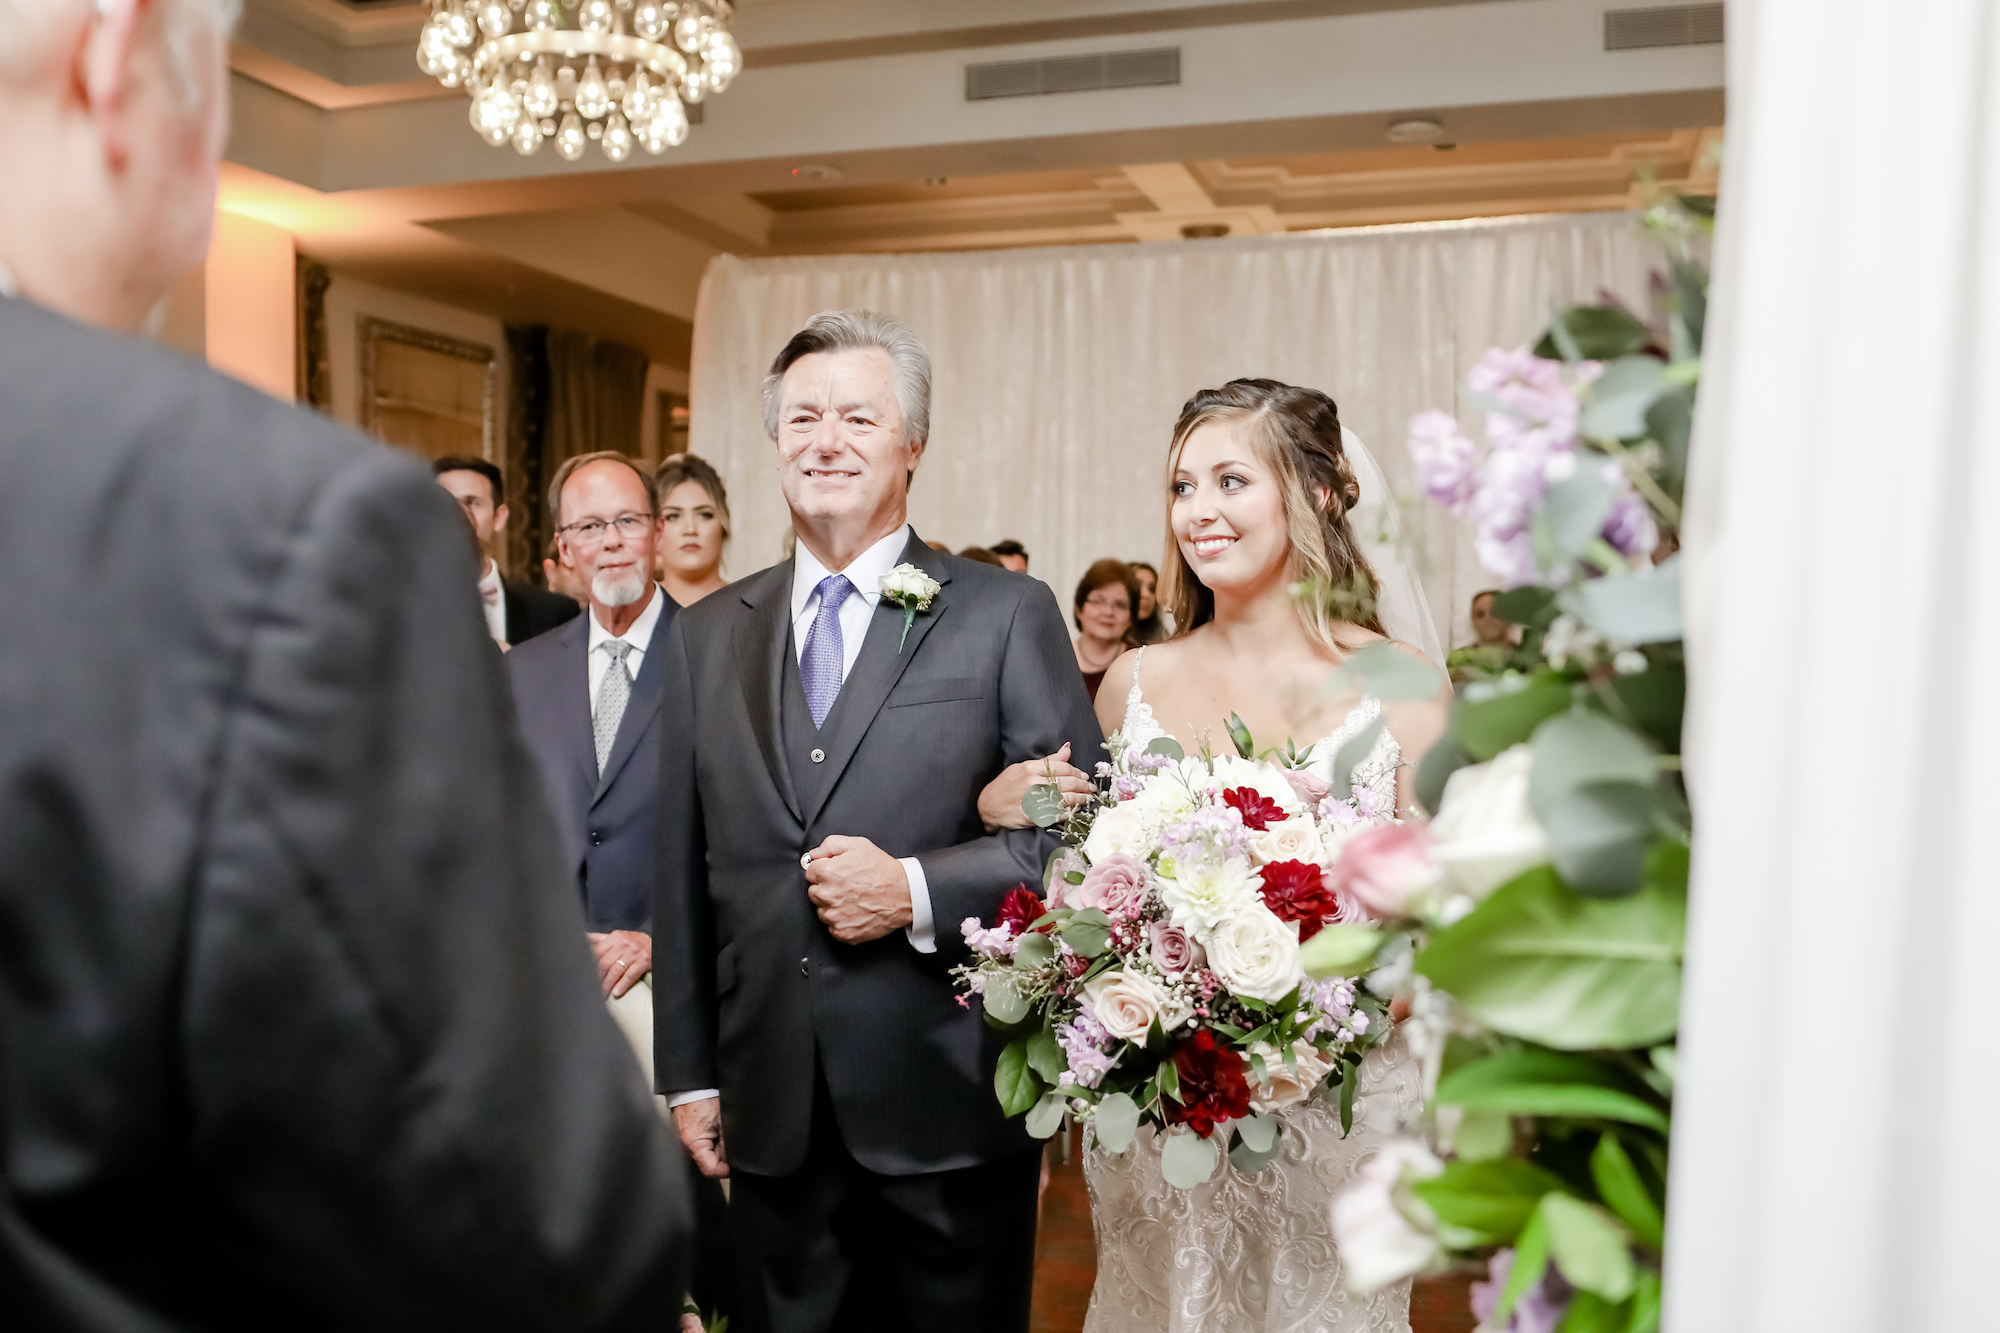 Tampa Bay Bride and Father Walk Down the Aisle Portrait, Bride Holding Romantic Floral Wedding Bouquet with Red, White and Mauve Roses, Purple Flowers with Greenery and Eucalyptus   Downtown St. Pete Wedding Planner Blue Skies Weddings and Events   Florida Wedding Photographer Lifelong Photography Studio